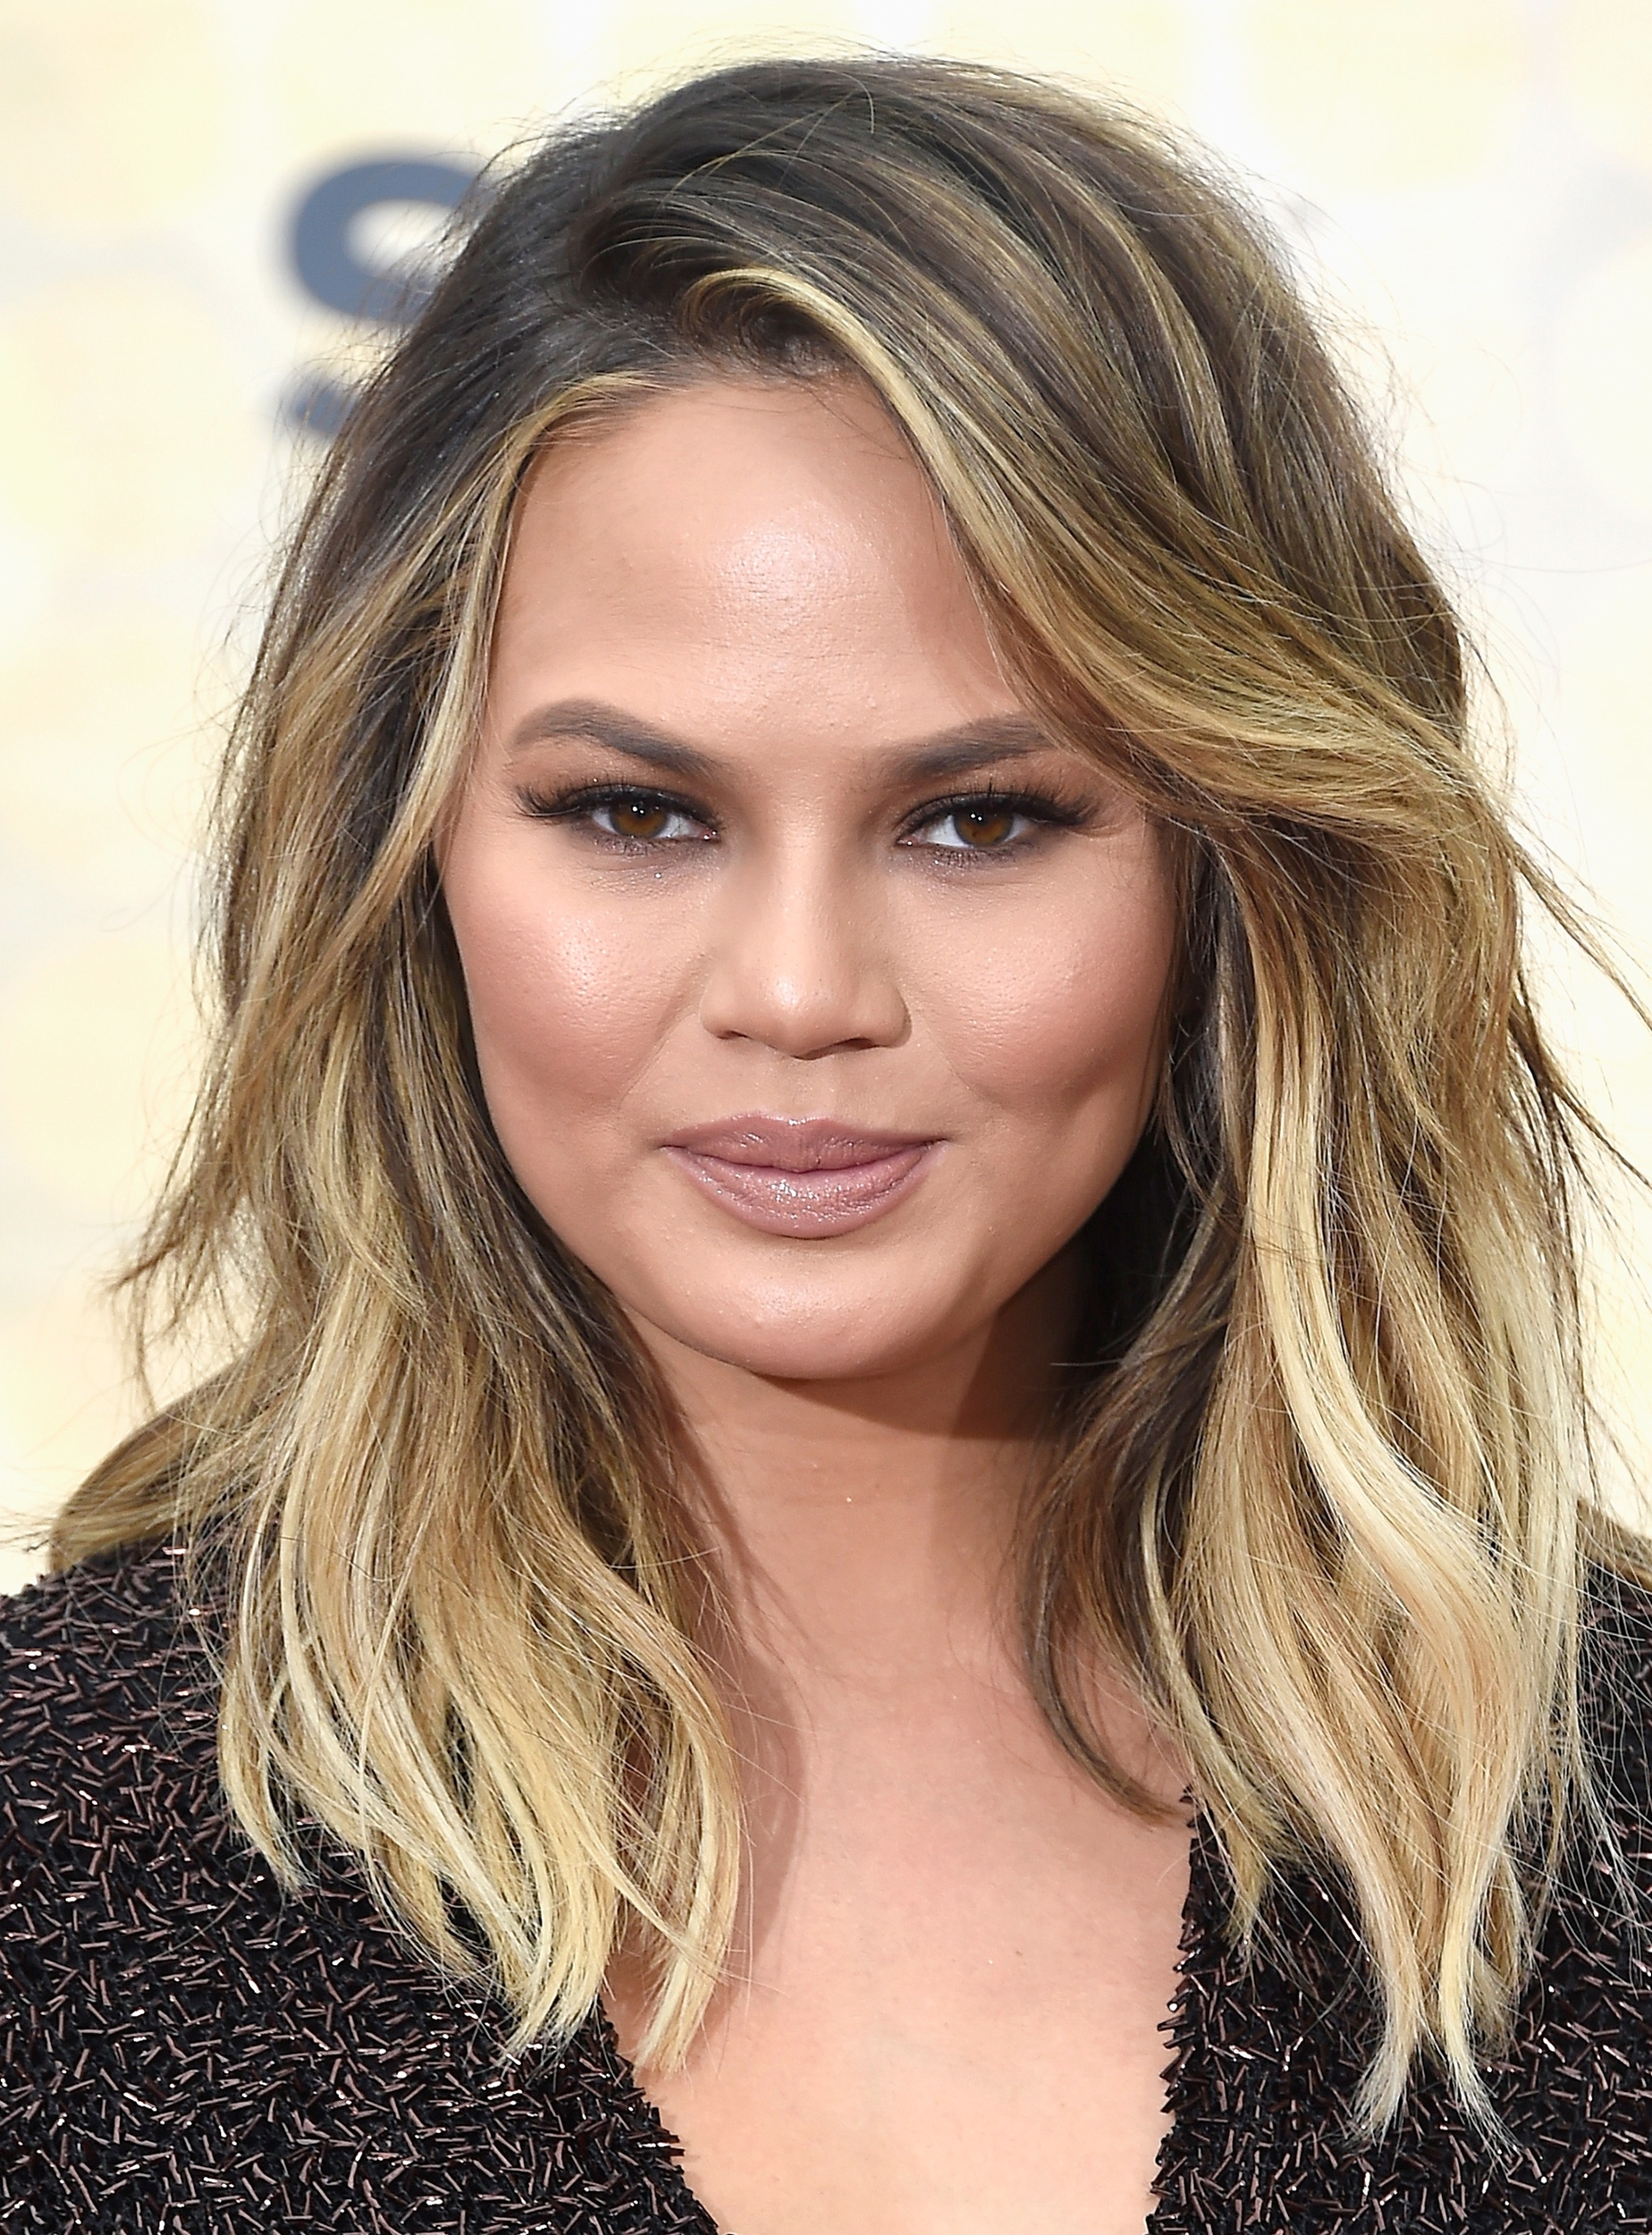 Bestyle For Round Faces Ssyles Chrissy Teigen intended for Best Haircut For Square Heart Face